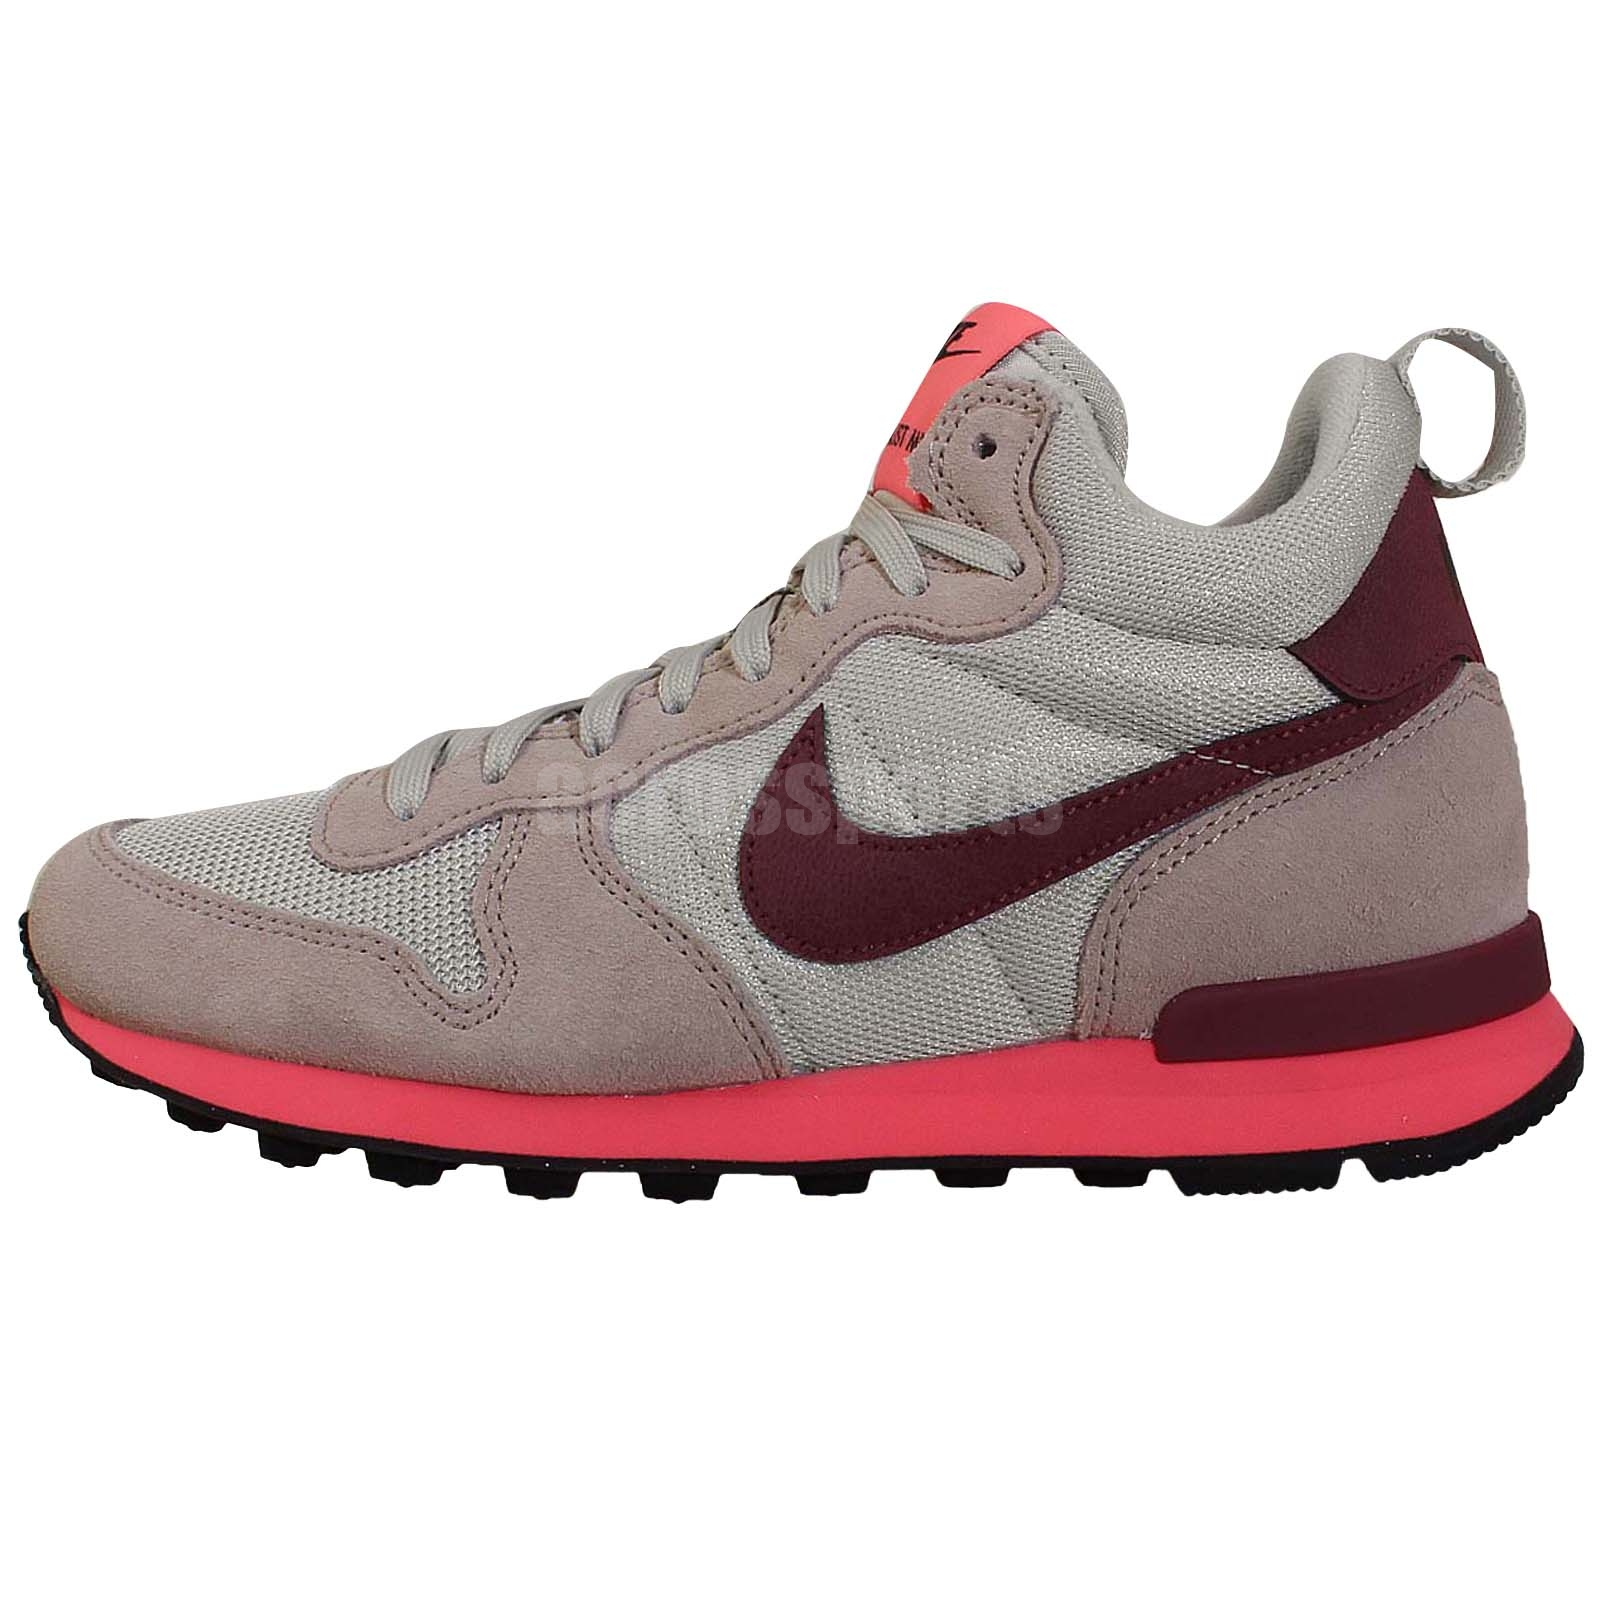 Awesome Nike Stamina Casual Shoes For Women  Gymshoeswomen